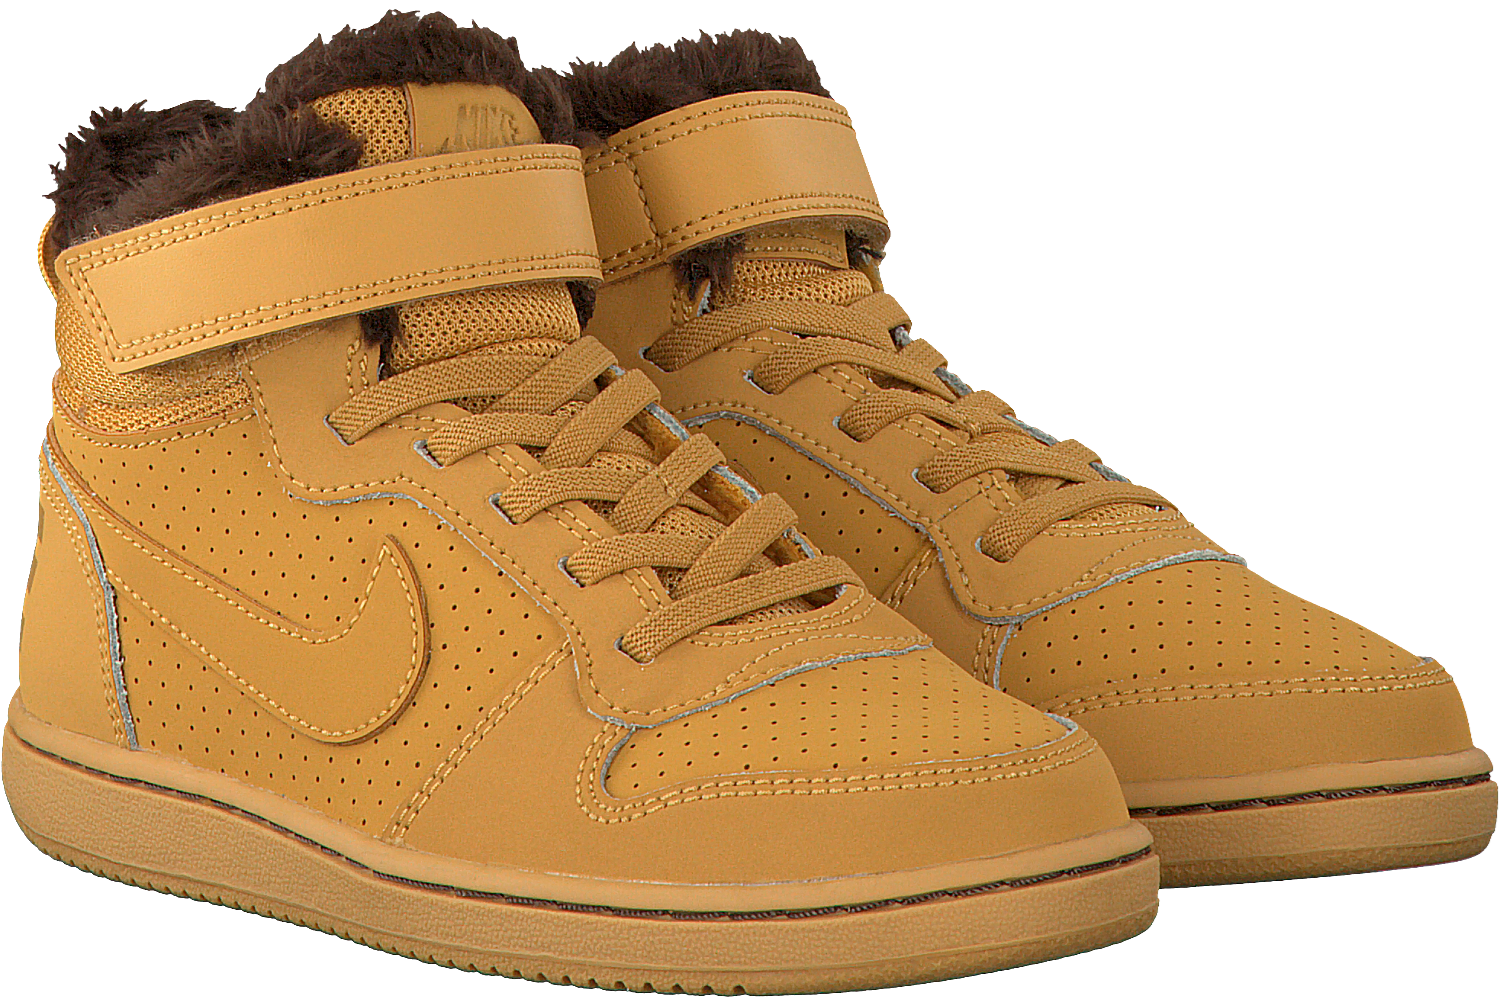 Camelfarbene NIKE Sneaker COURT BOROUGH MID (KIDS)